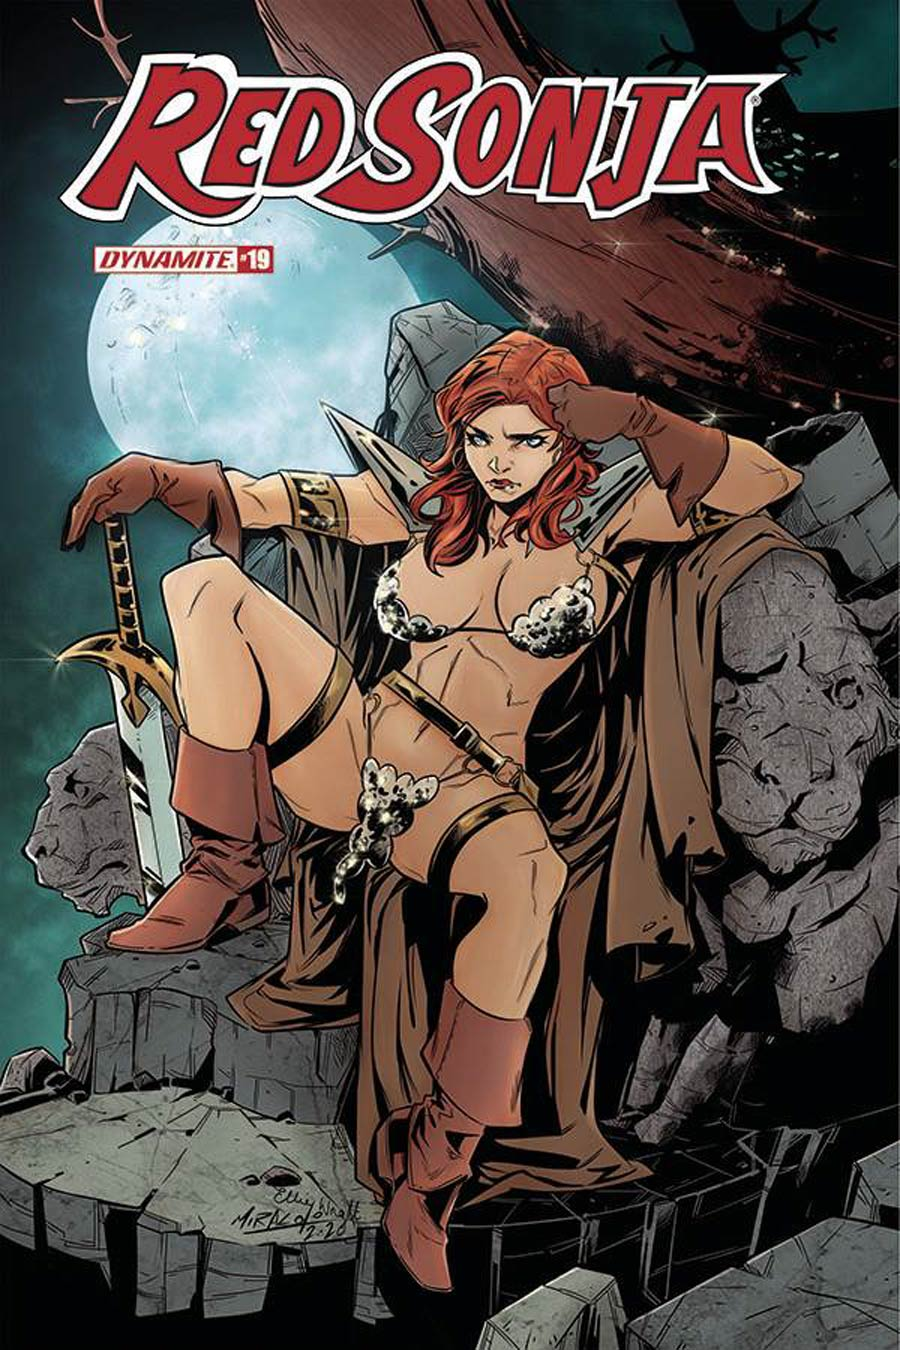 Red Sonja Vol 8 #19 Cover D Variant Alessandro Miracolo Cover